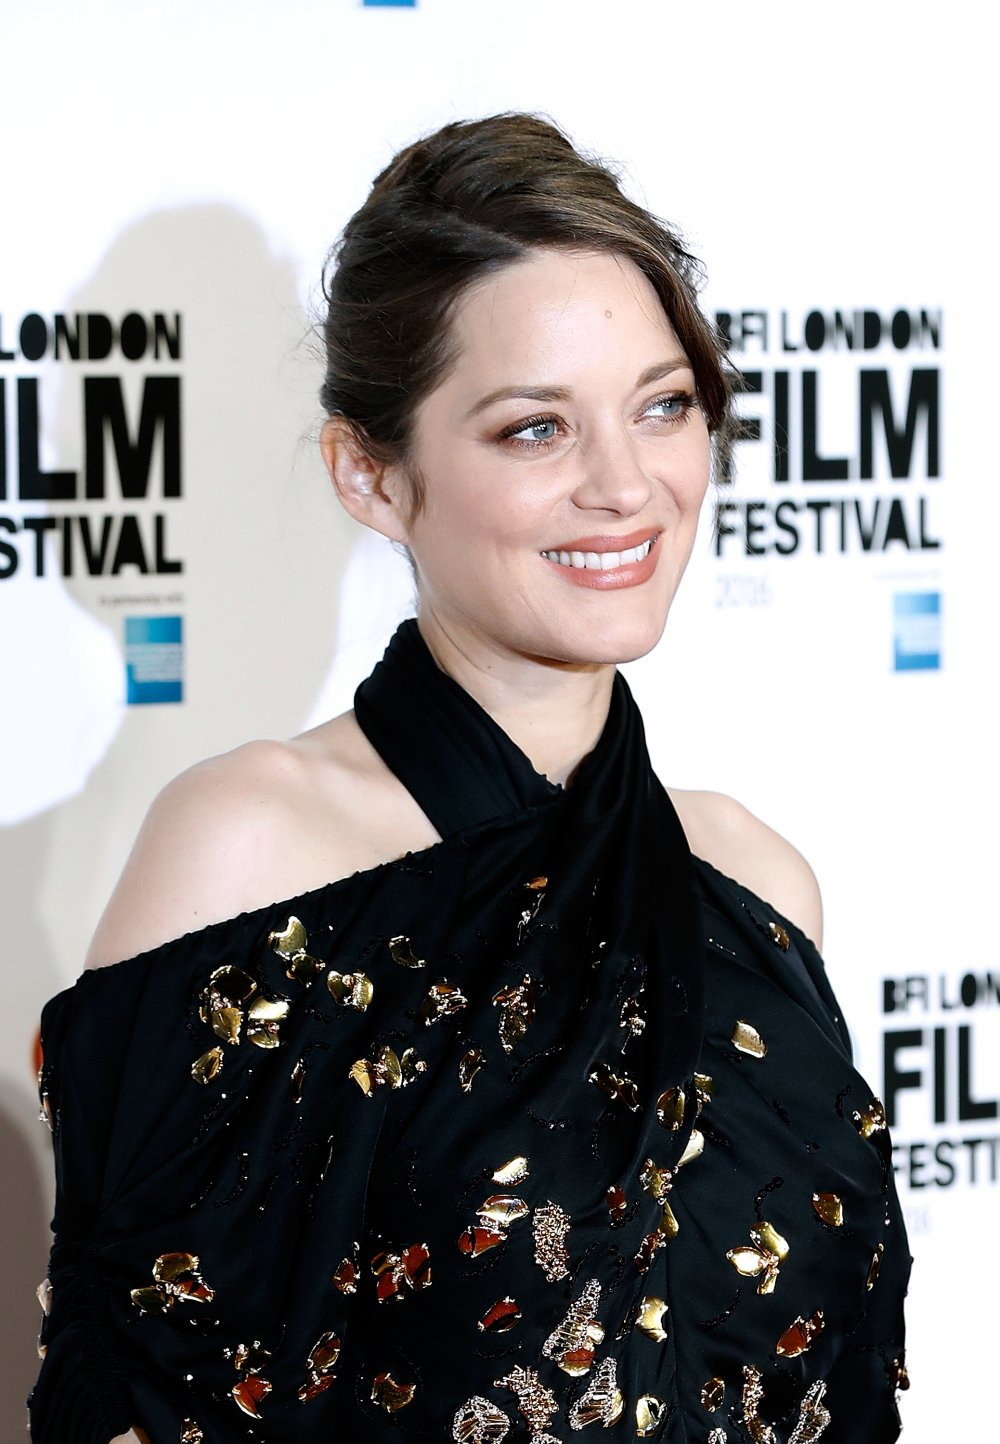 e4180458ba0 Marion Cotillard attends the It's Only the End of the World BFI